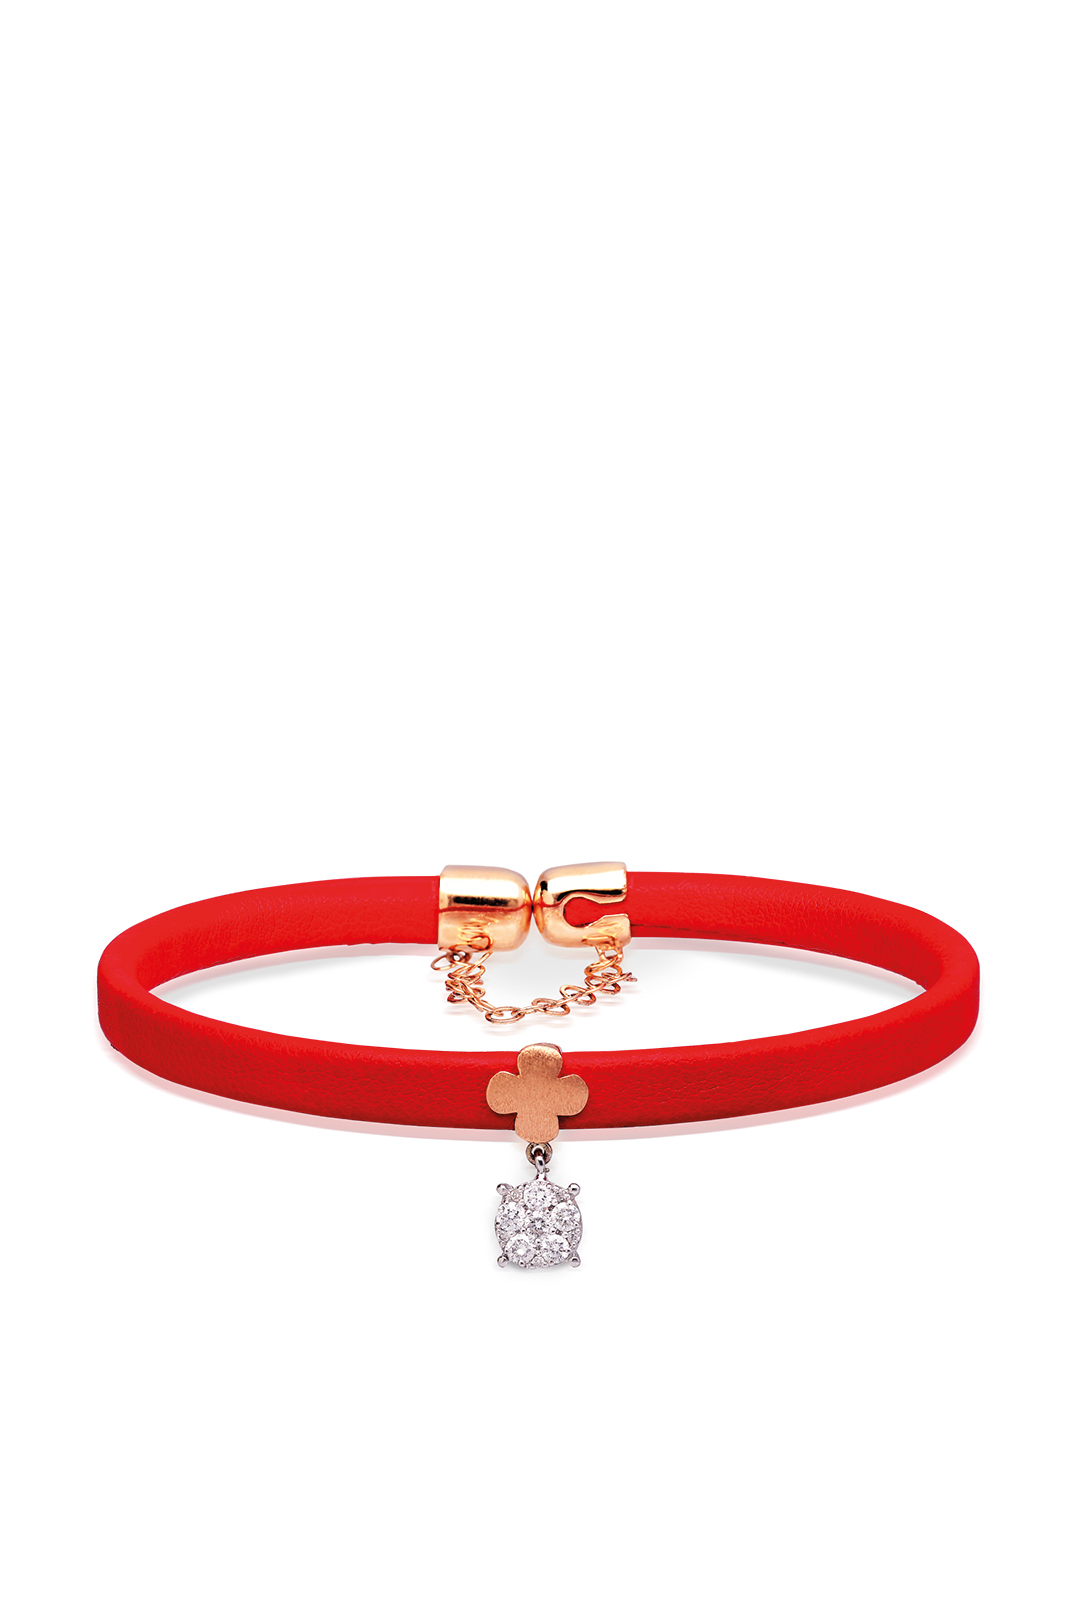 RED LEATHER GOLD AND DIAMOND BRACELET